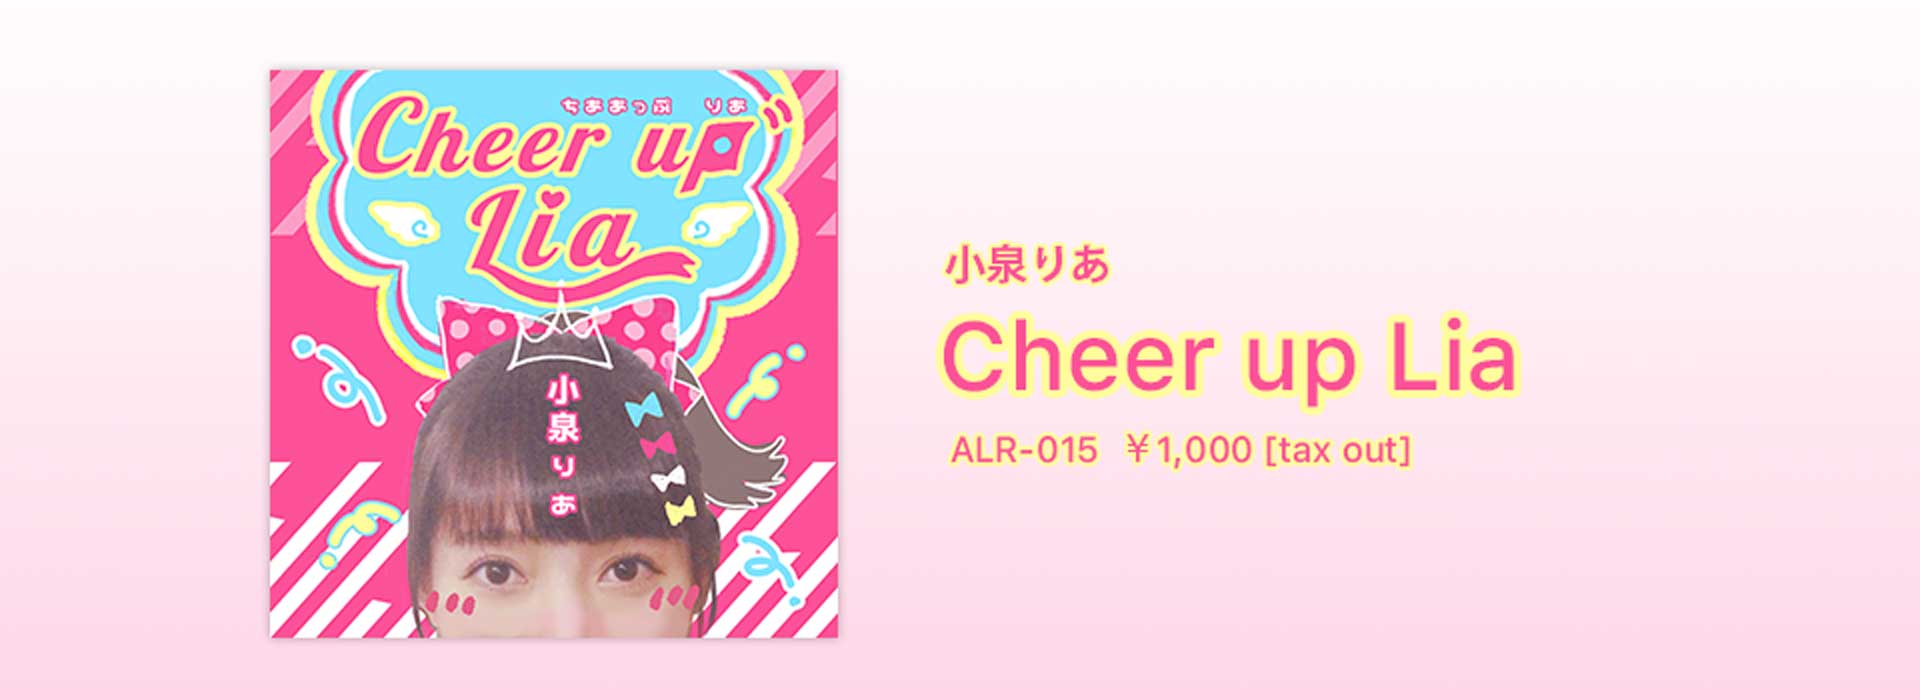 小泉りあ Cheer up LIA